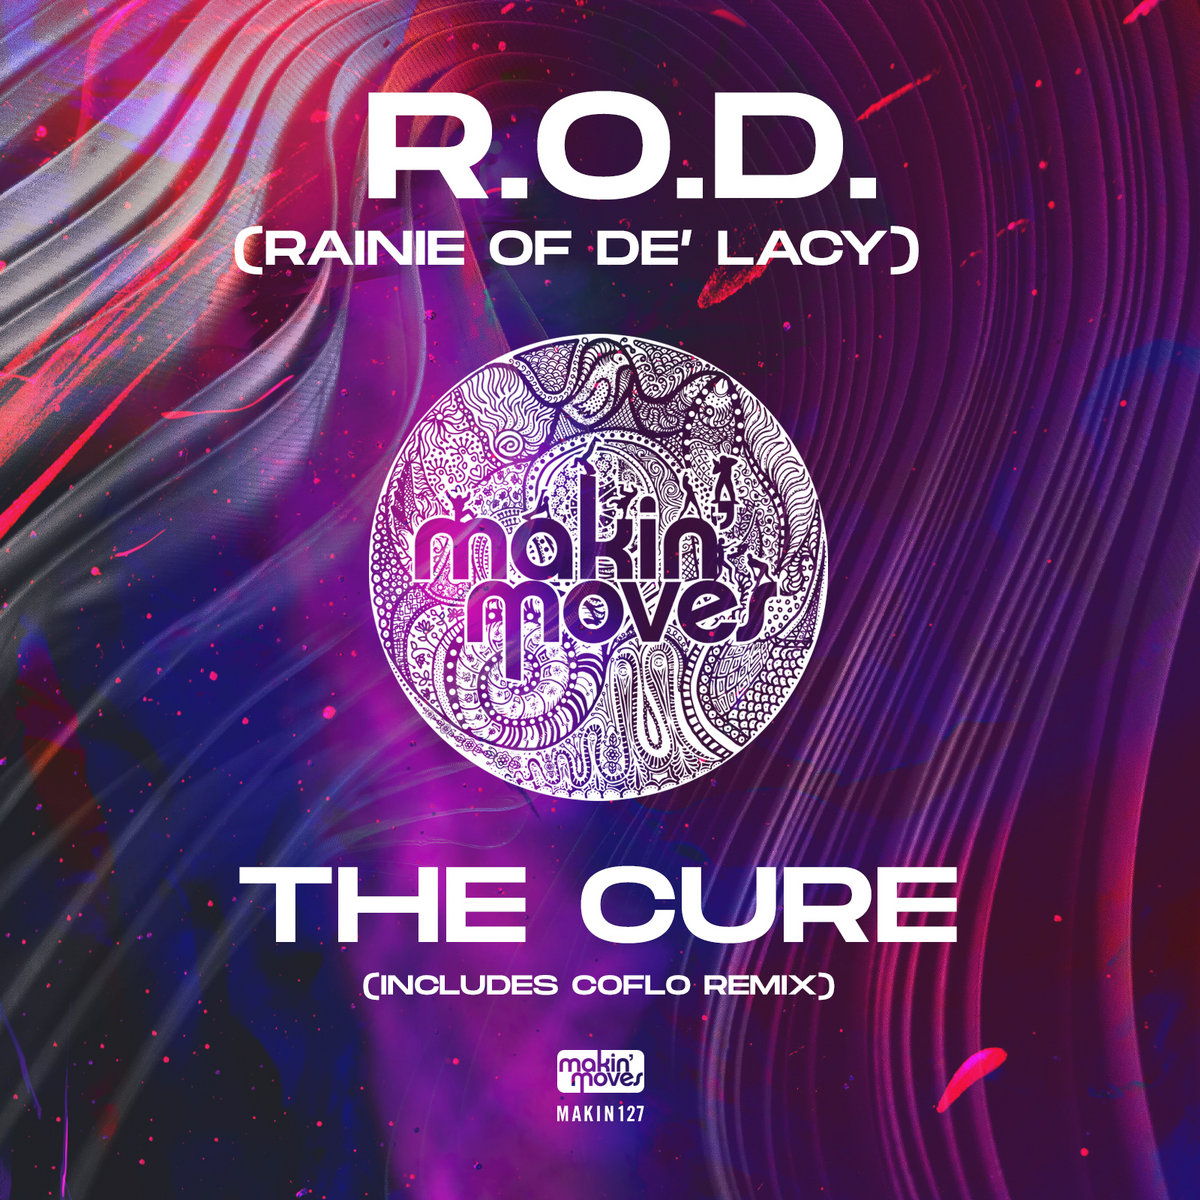 R.O.D (Rainie x De' Lacy) - The Cure (including Coflo Remix) [Makin Moves]